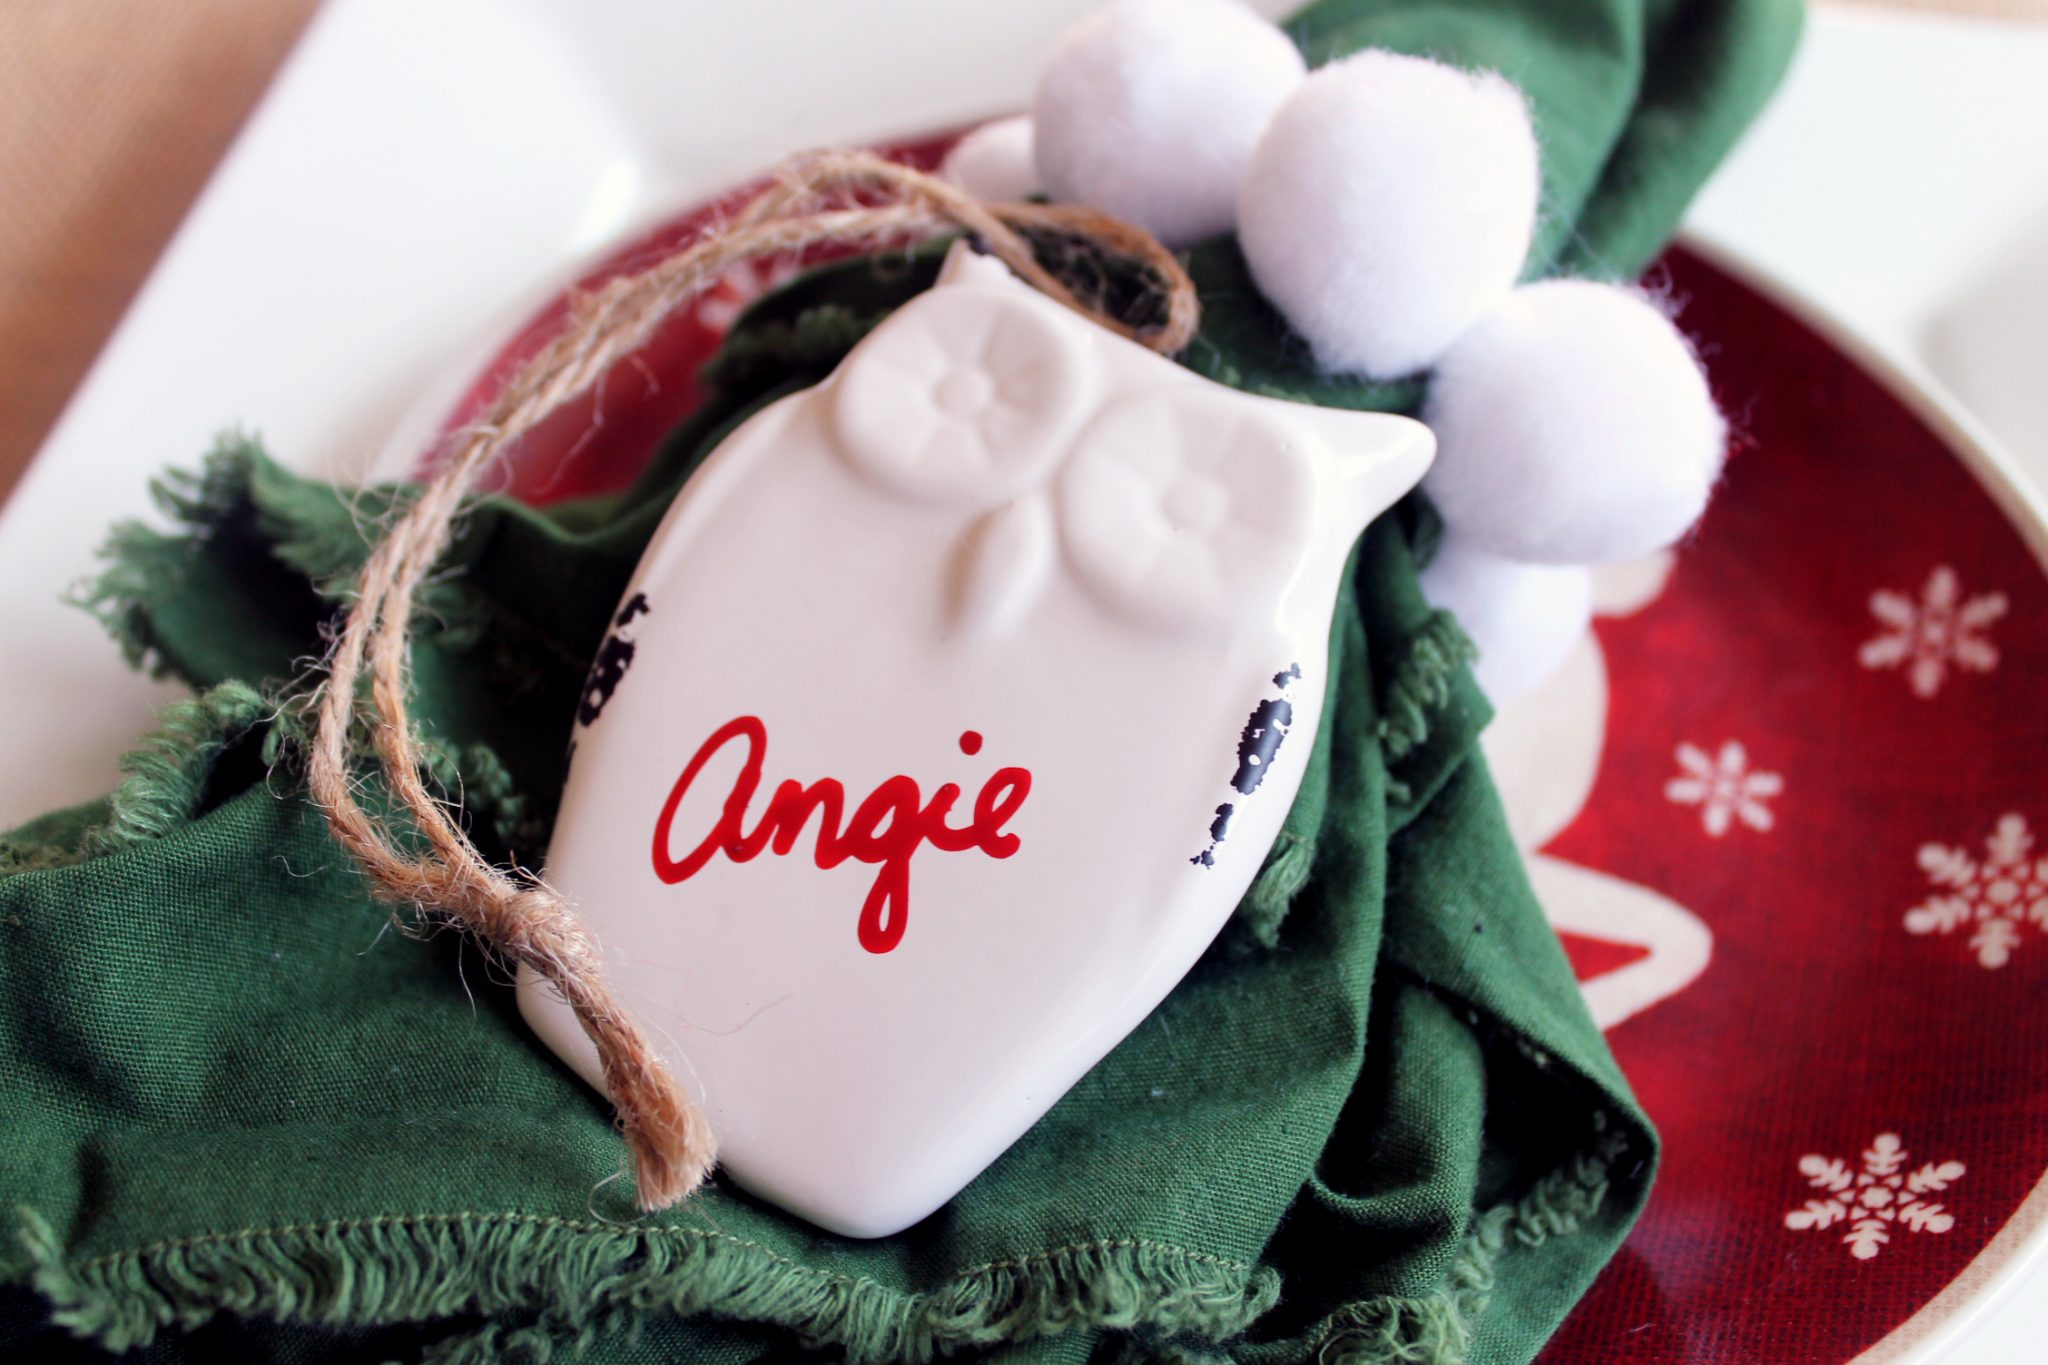 Make a Christmas placecard with these 5 ideas. An idea for every holiday table!